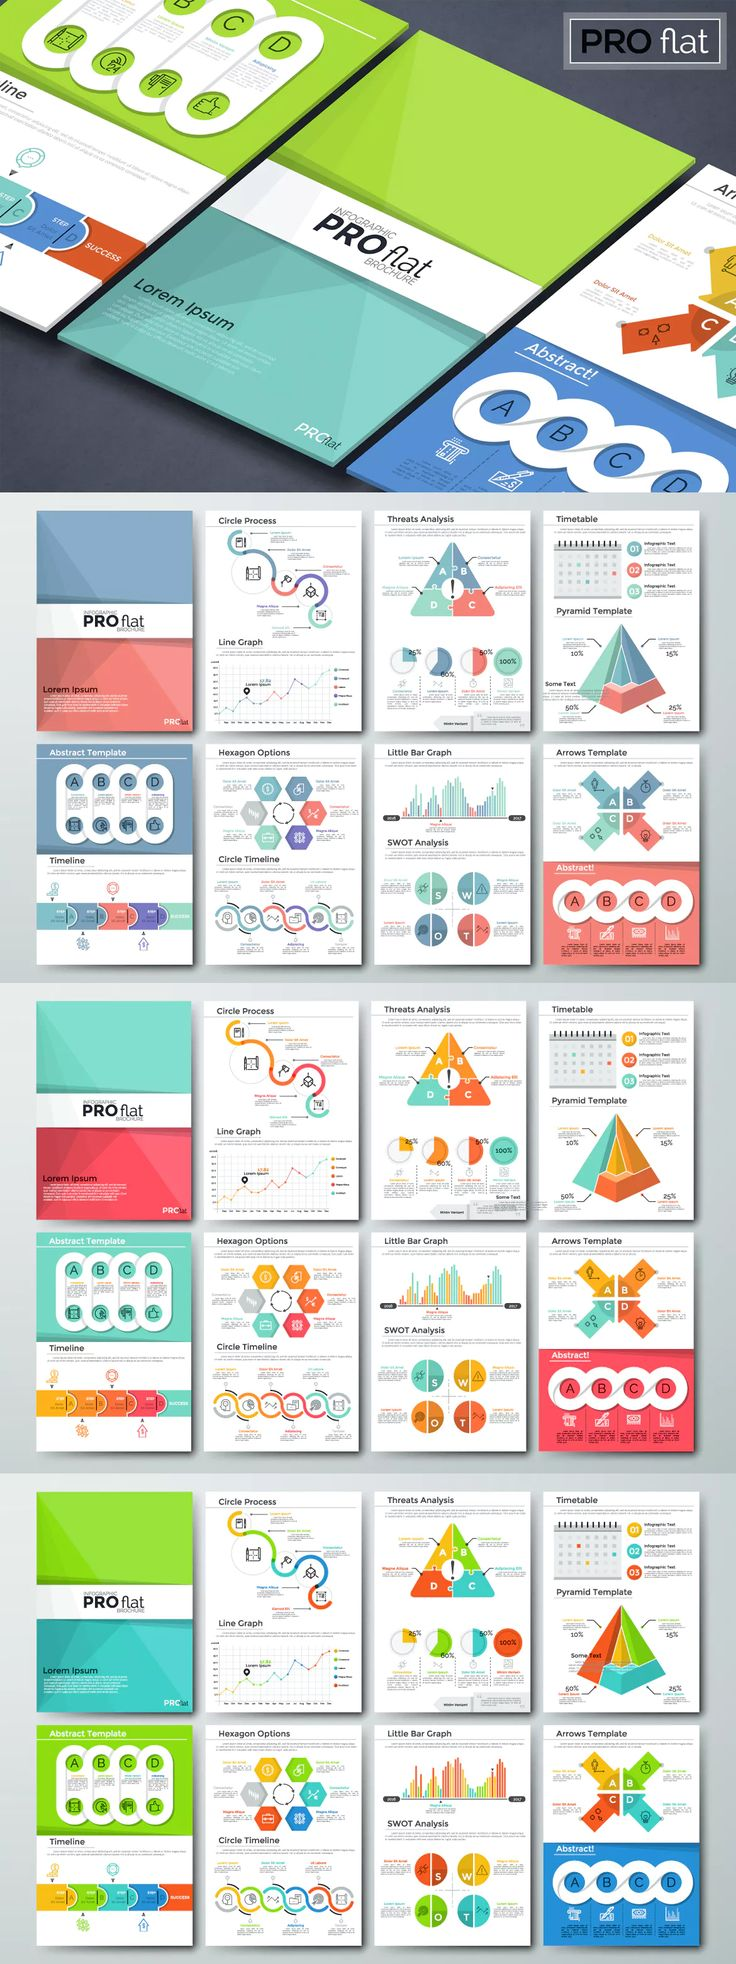 Pro Flat Infographic Brochure Template AI, EPS